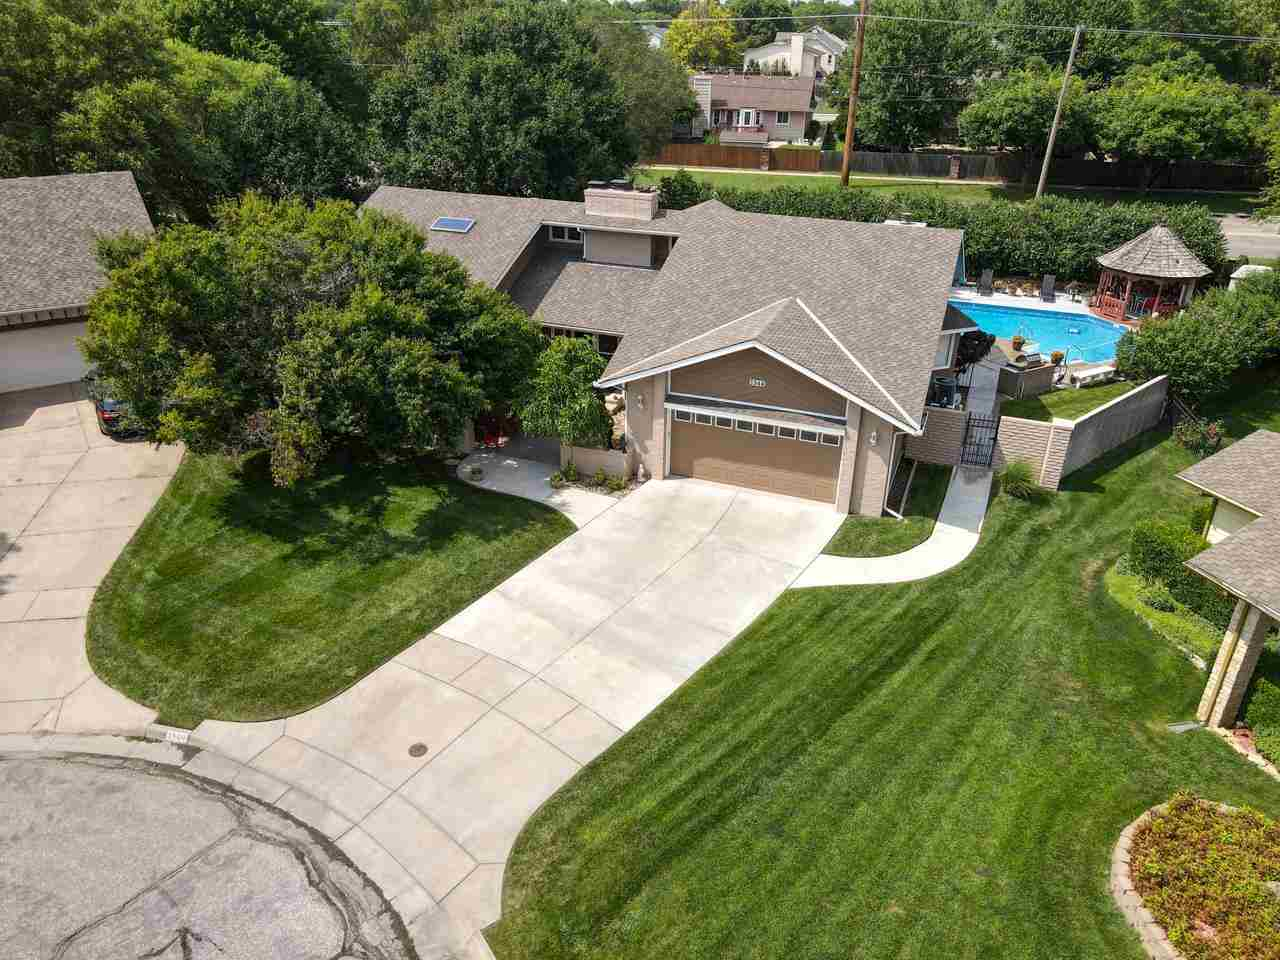 4 BEDS, 5 BATHS, 4500+ SQ FT MOVE IN READY RANCH HOME WITH AN INDOOR SAUNA, INDOOR HOT TUB/SPA, OUTD